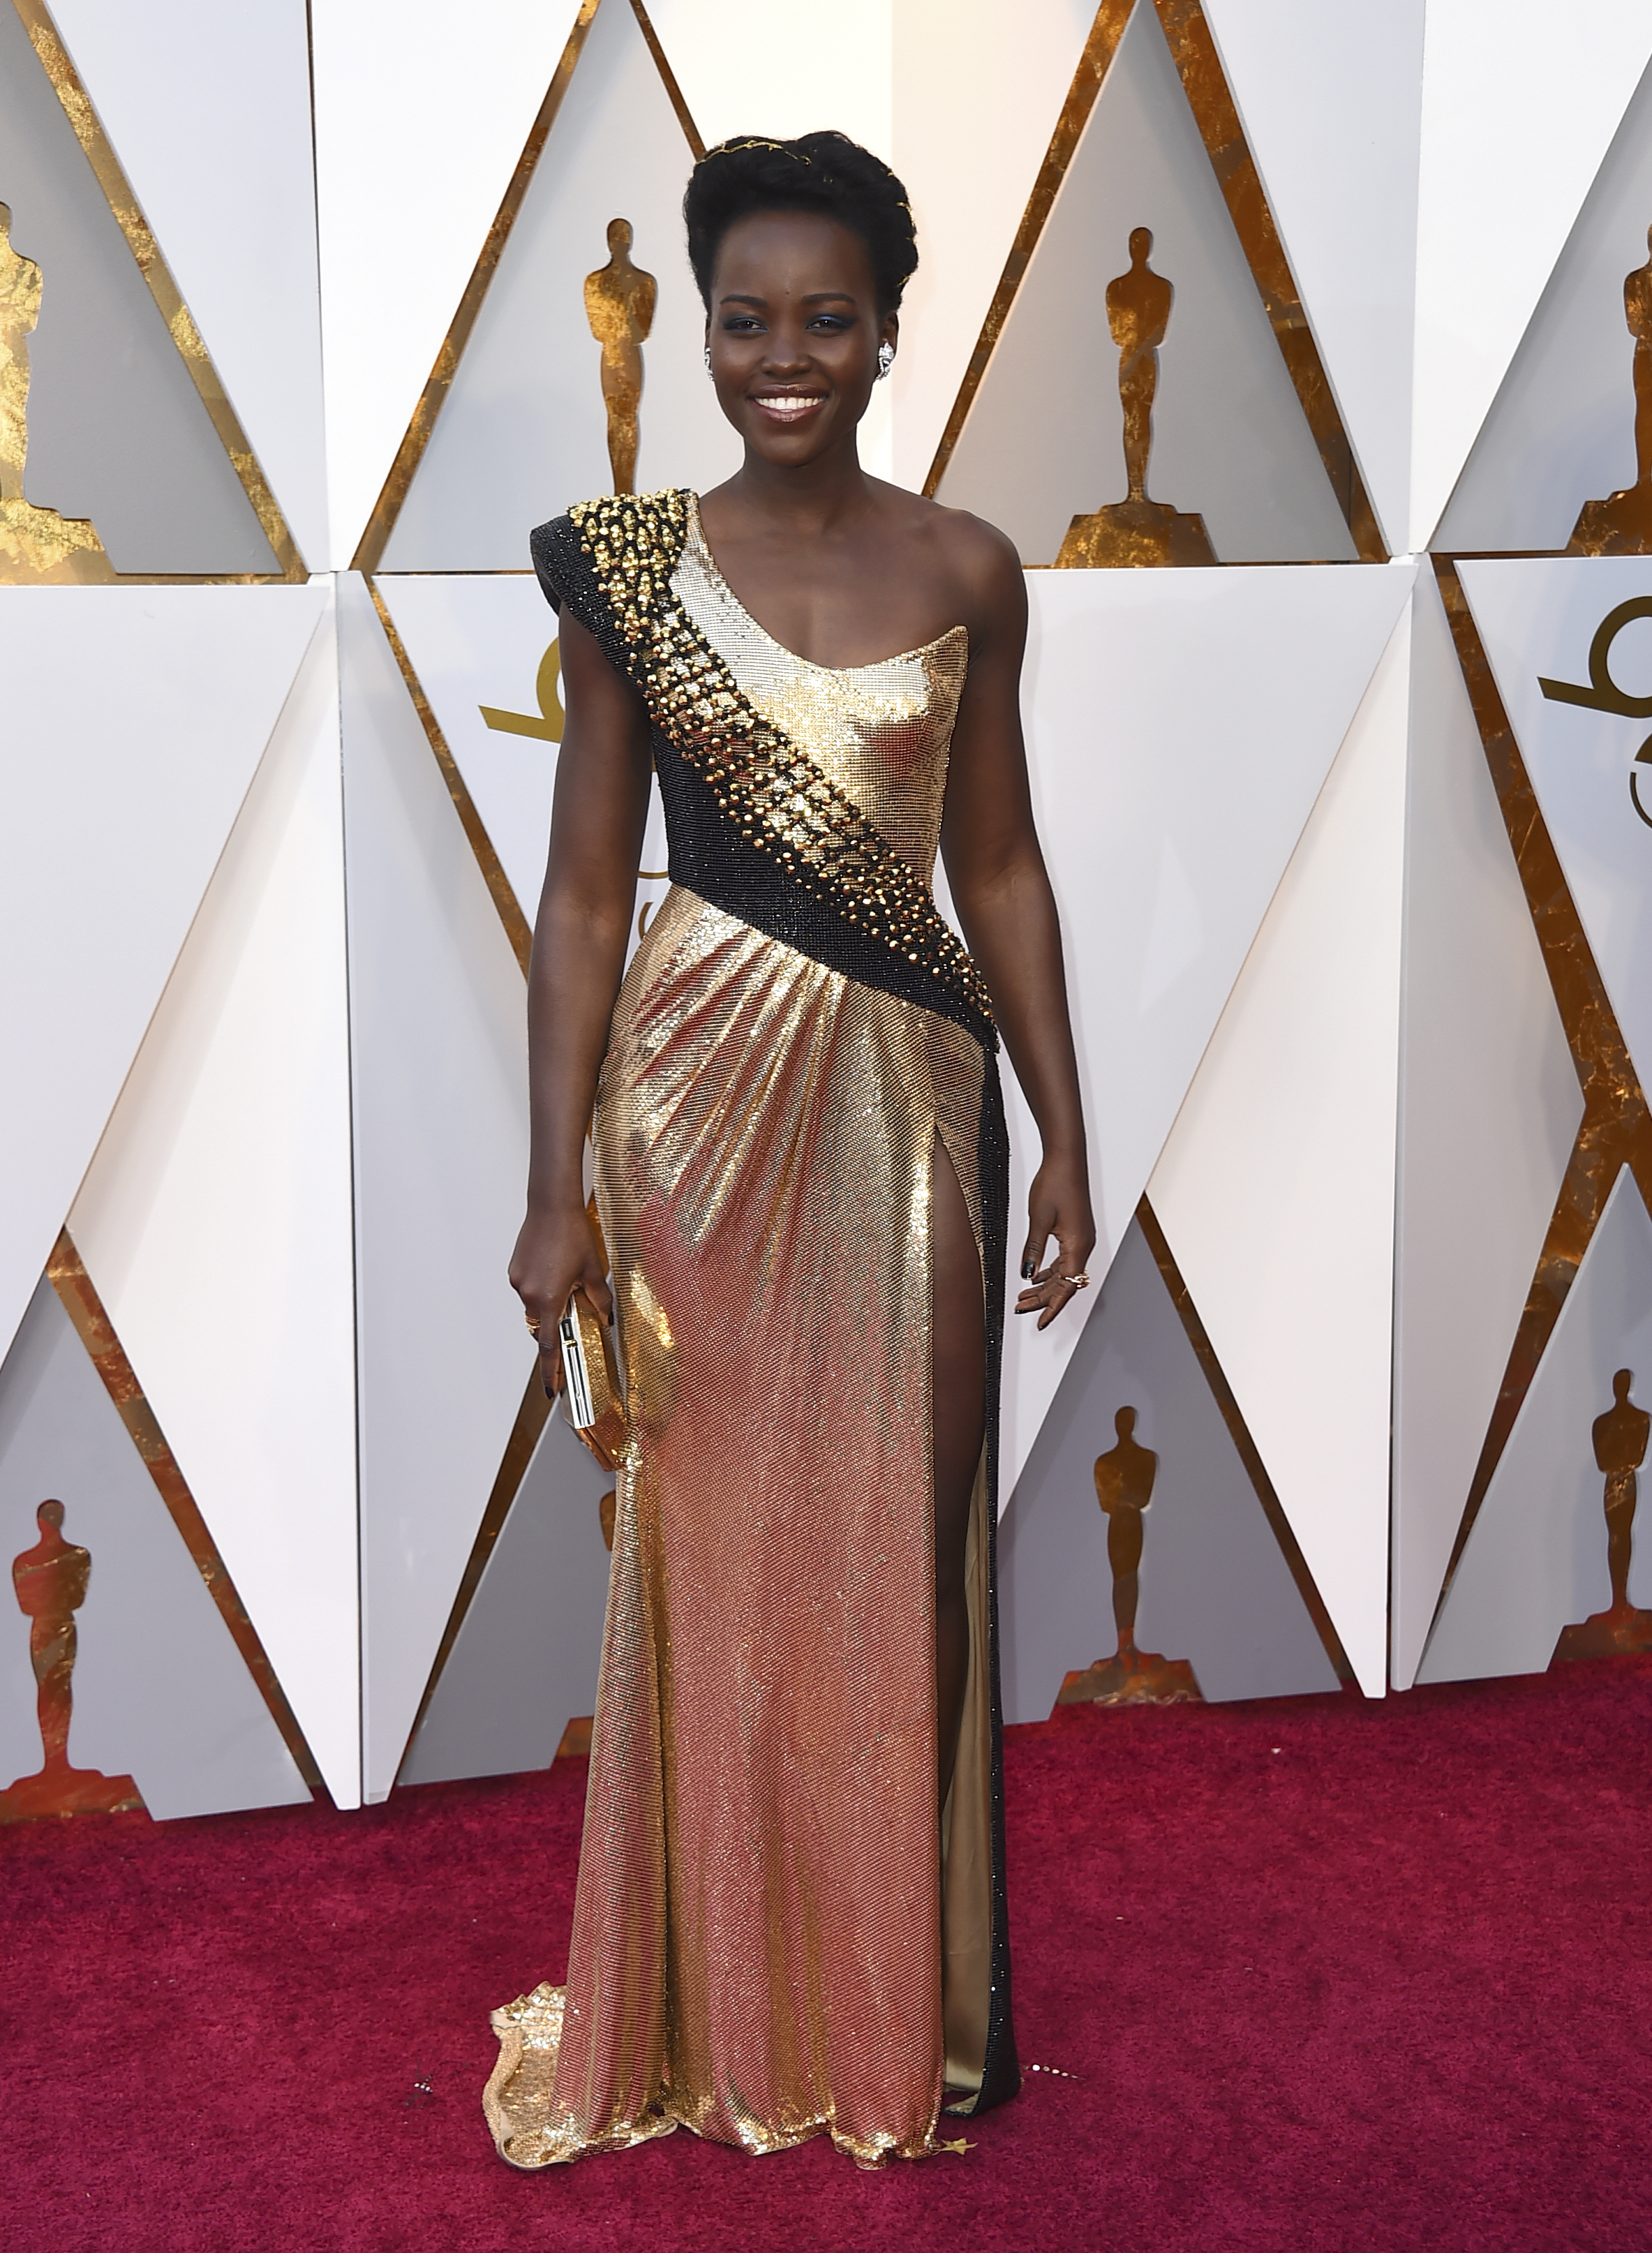 "<div class=""meta image-caption""><div class=""origin-logo origin-image none""><span>none</span></div><span class=""caption-text"">Previous Oscar winner Lupita Nyong'o arrives at the Oscars on Sunday, March 4, 2018, at the Dolby Theatre in Los Angeles. (Jordan Strauss/Invision/AP)</span></div>"